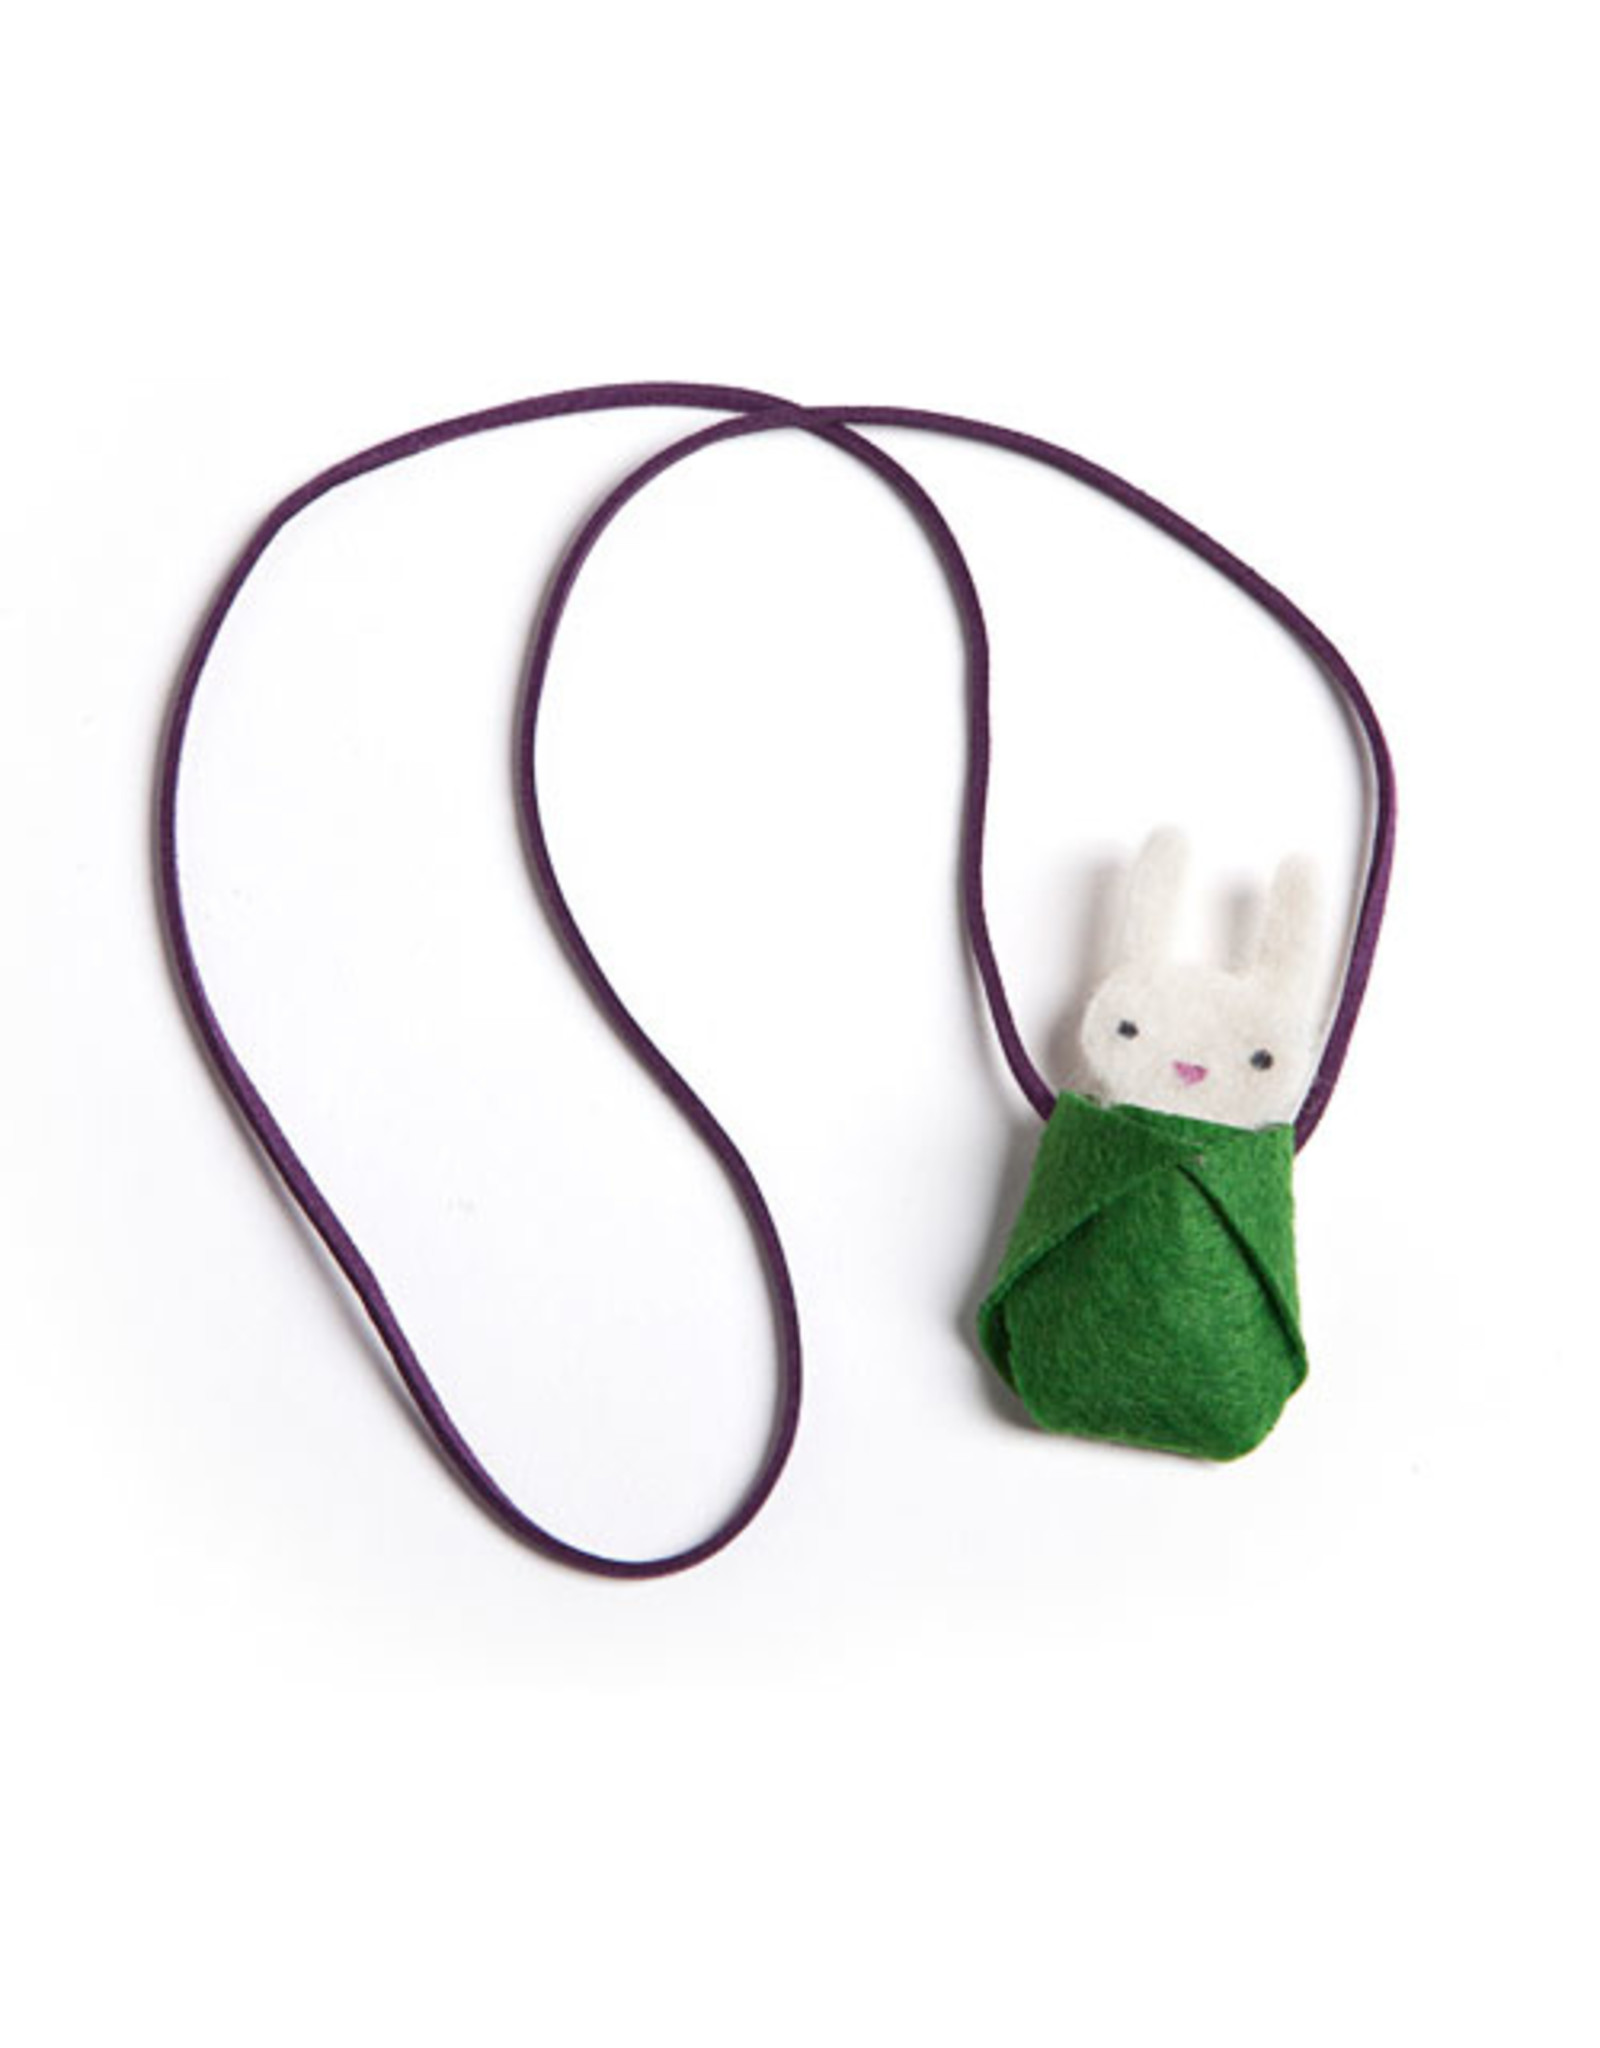 ANN WILLIAMS GROUP Craft-tastic Bunny Necklace Kit-